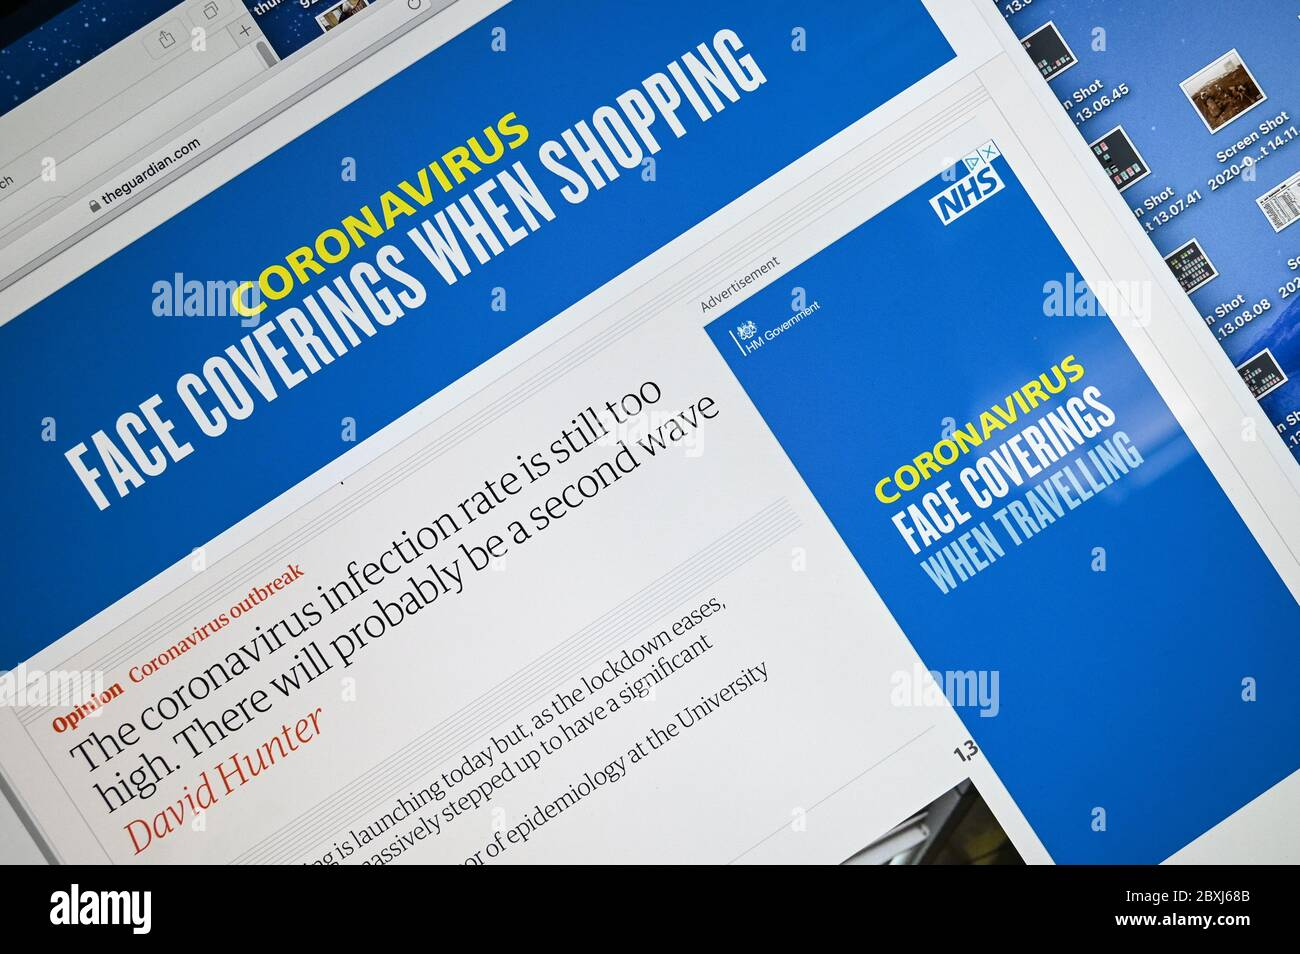 """UK government adverts """"Coronavirus, face coverings when shopping"""" and """"when travelling"""". Stock Photo"""